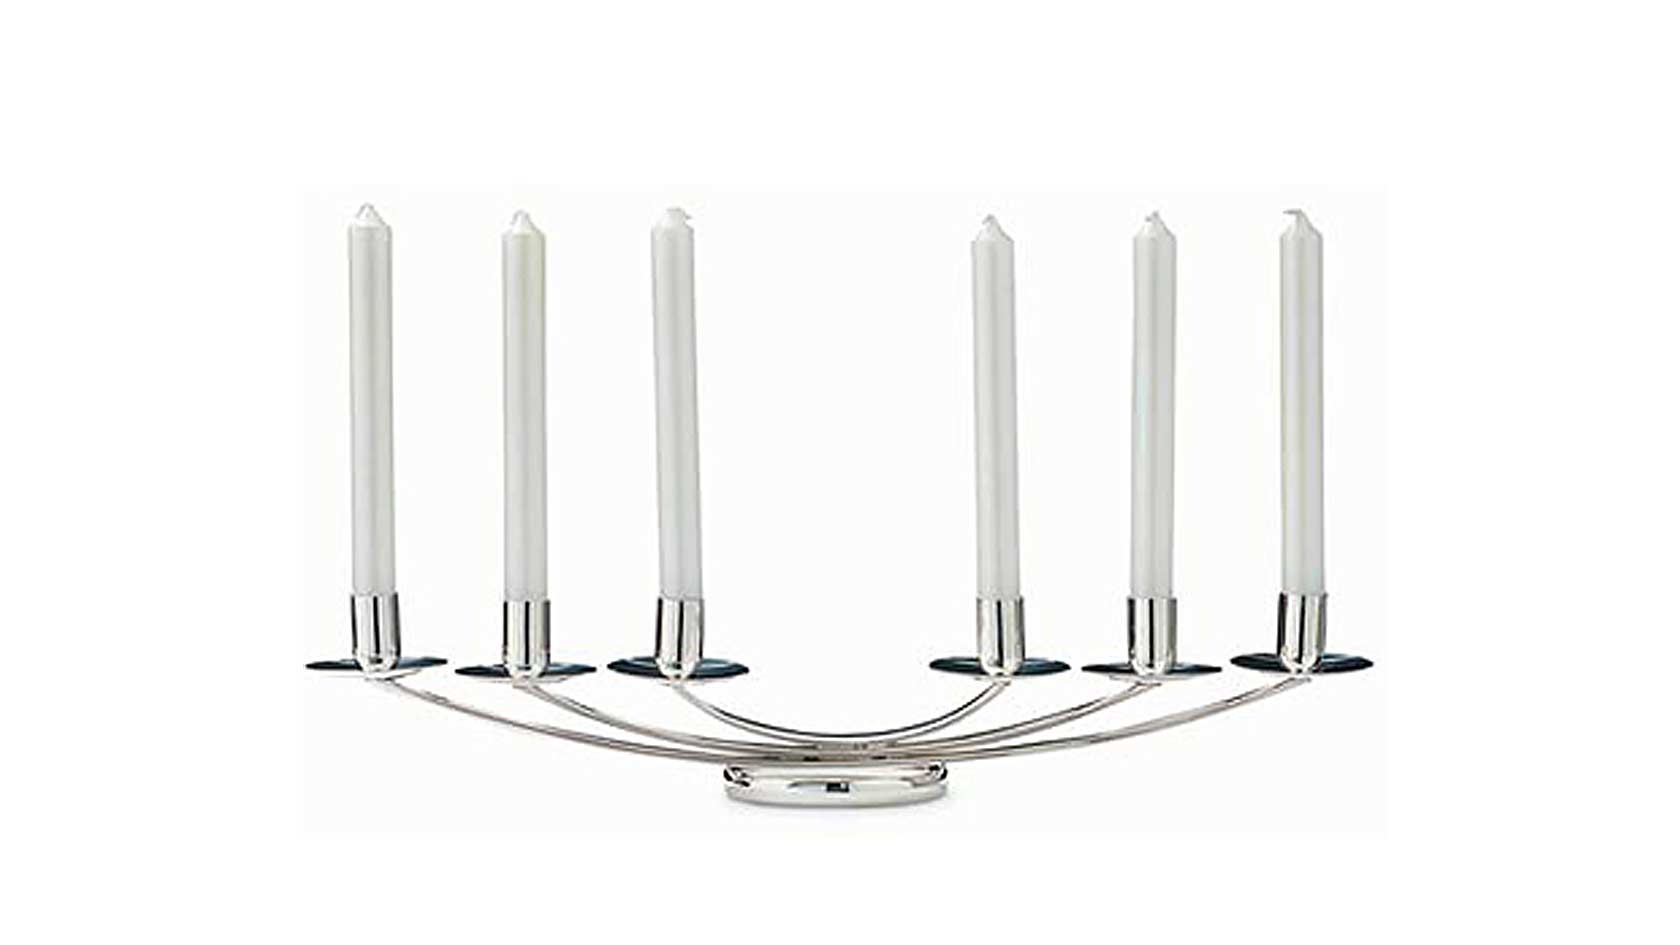 Olea Six Light Candelabra with Candles